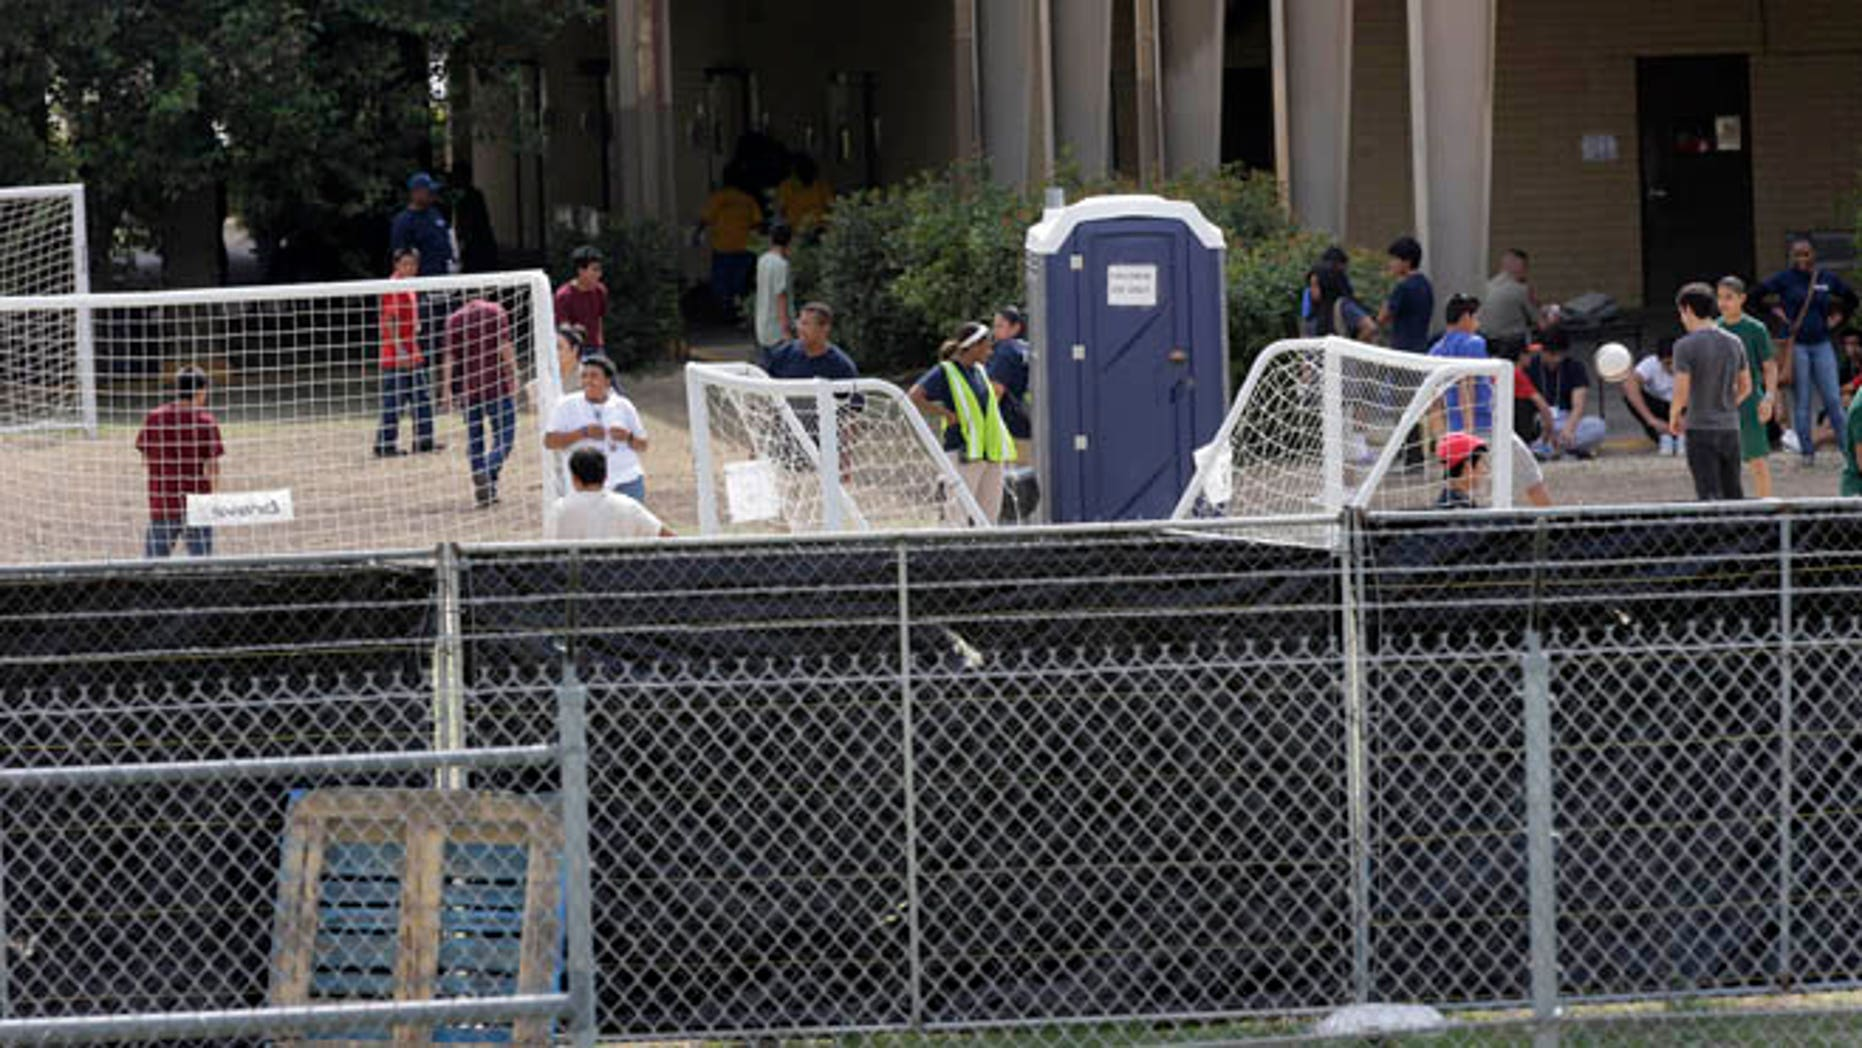 June 23, 2014: A temporary shelter for unaccompanied minors who have entered the country illegally is seen at Lackland Air Force Base in San Antonio, Texas.